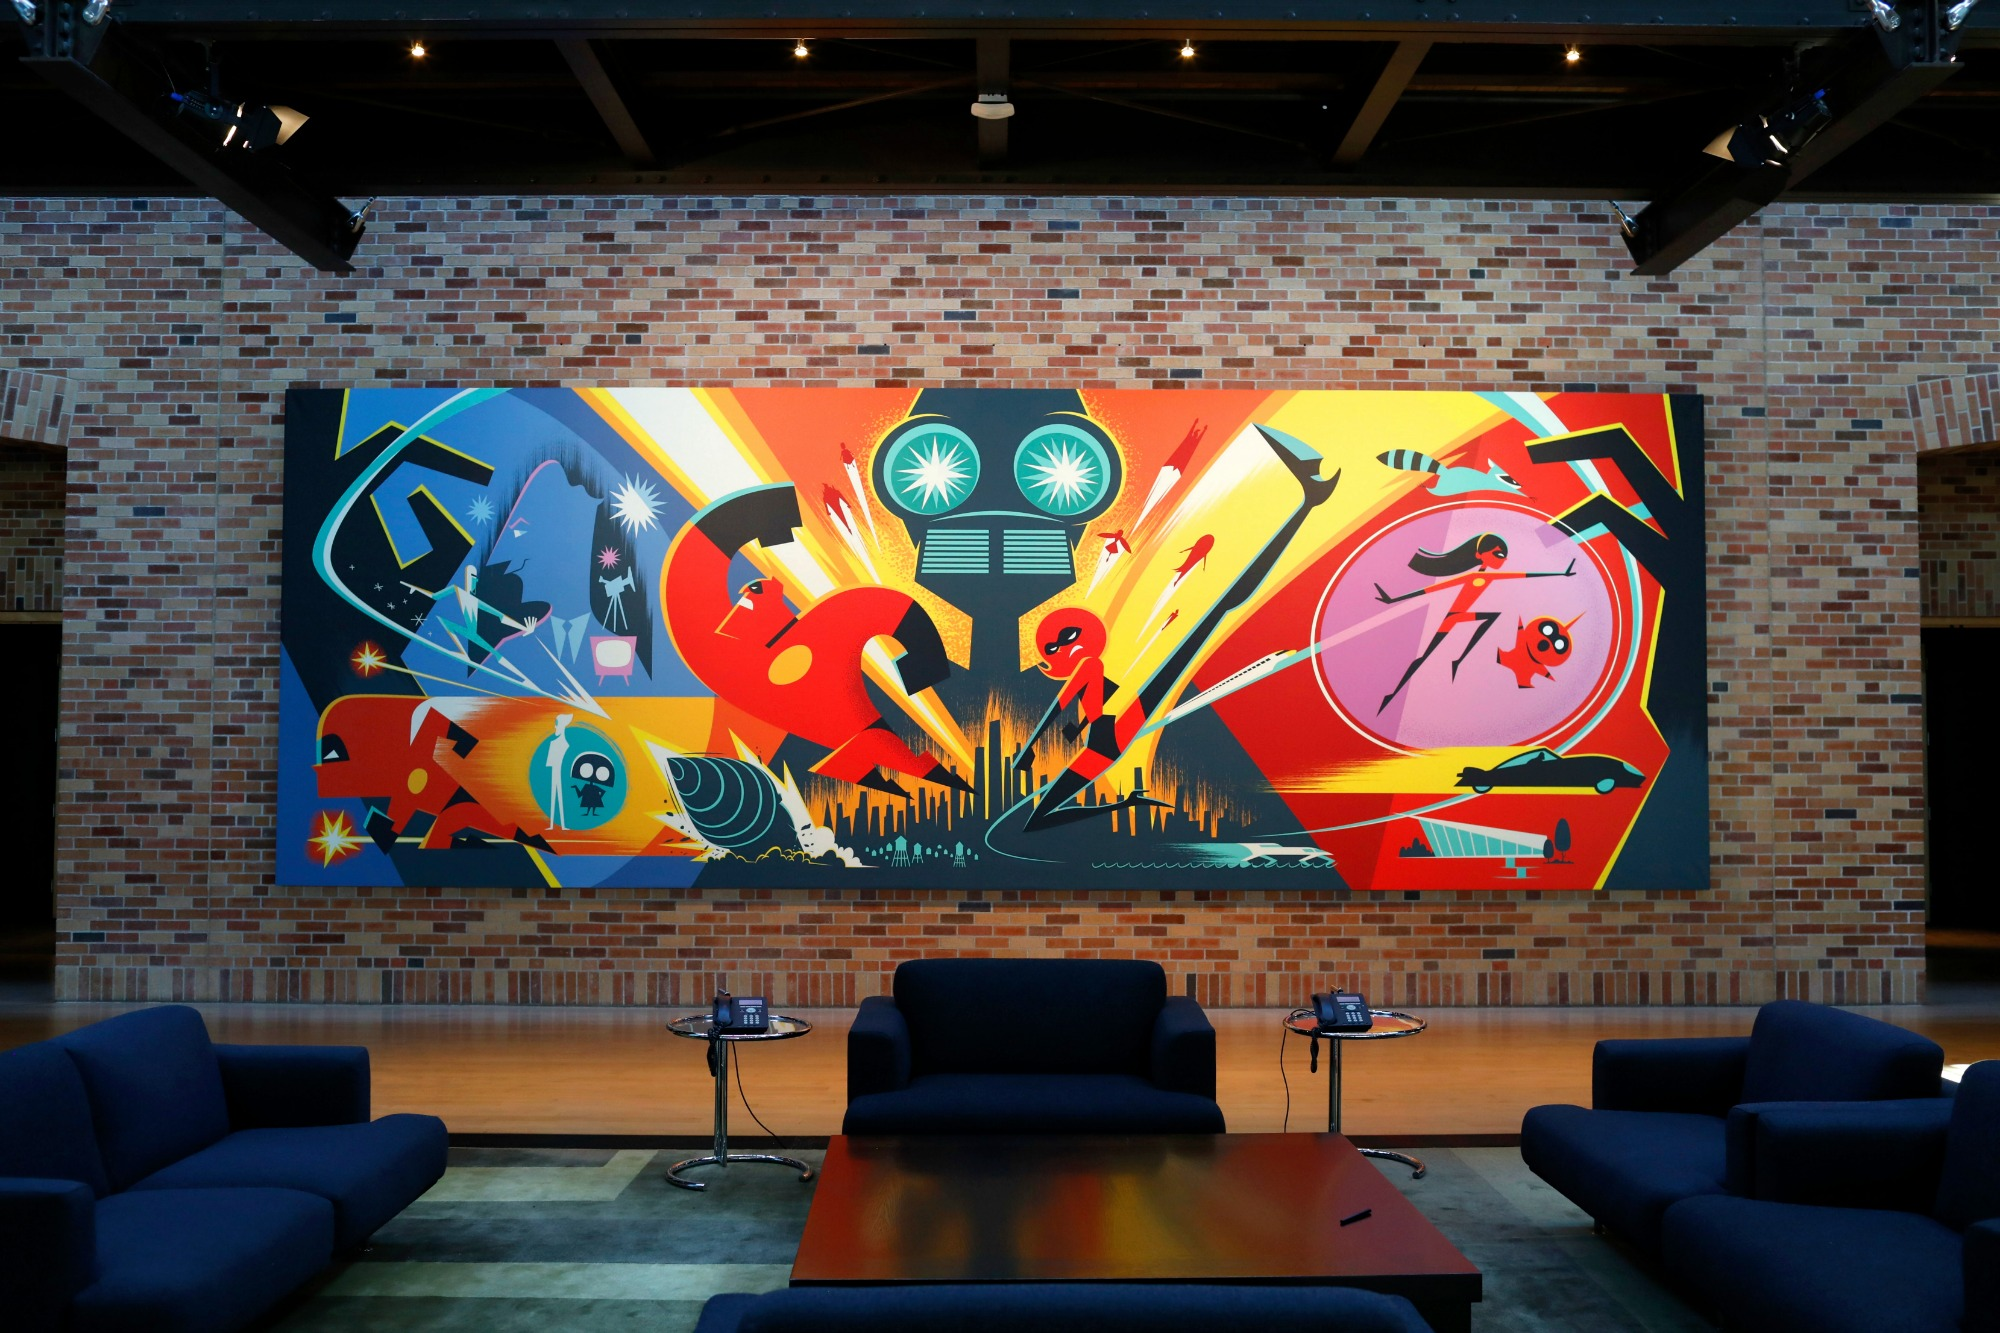 INCREDIBLES 2 Mural at Pixar Animation Studios